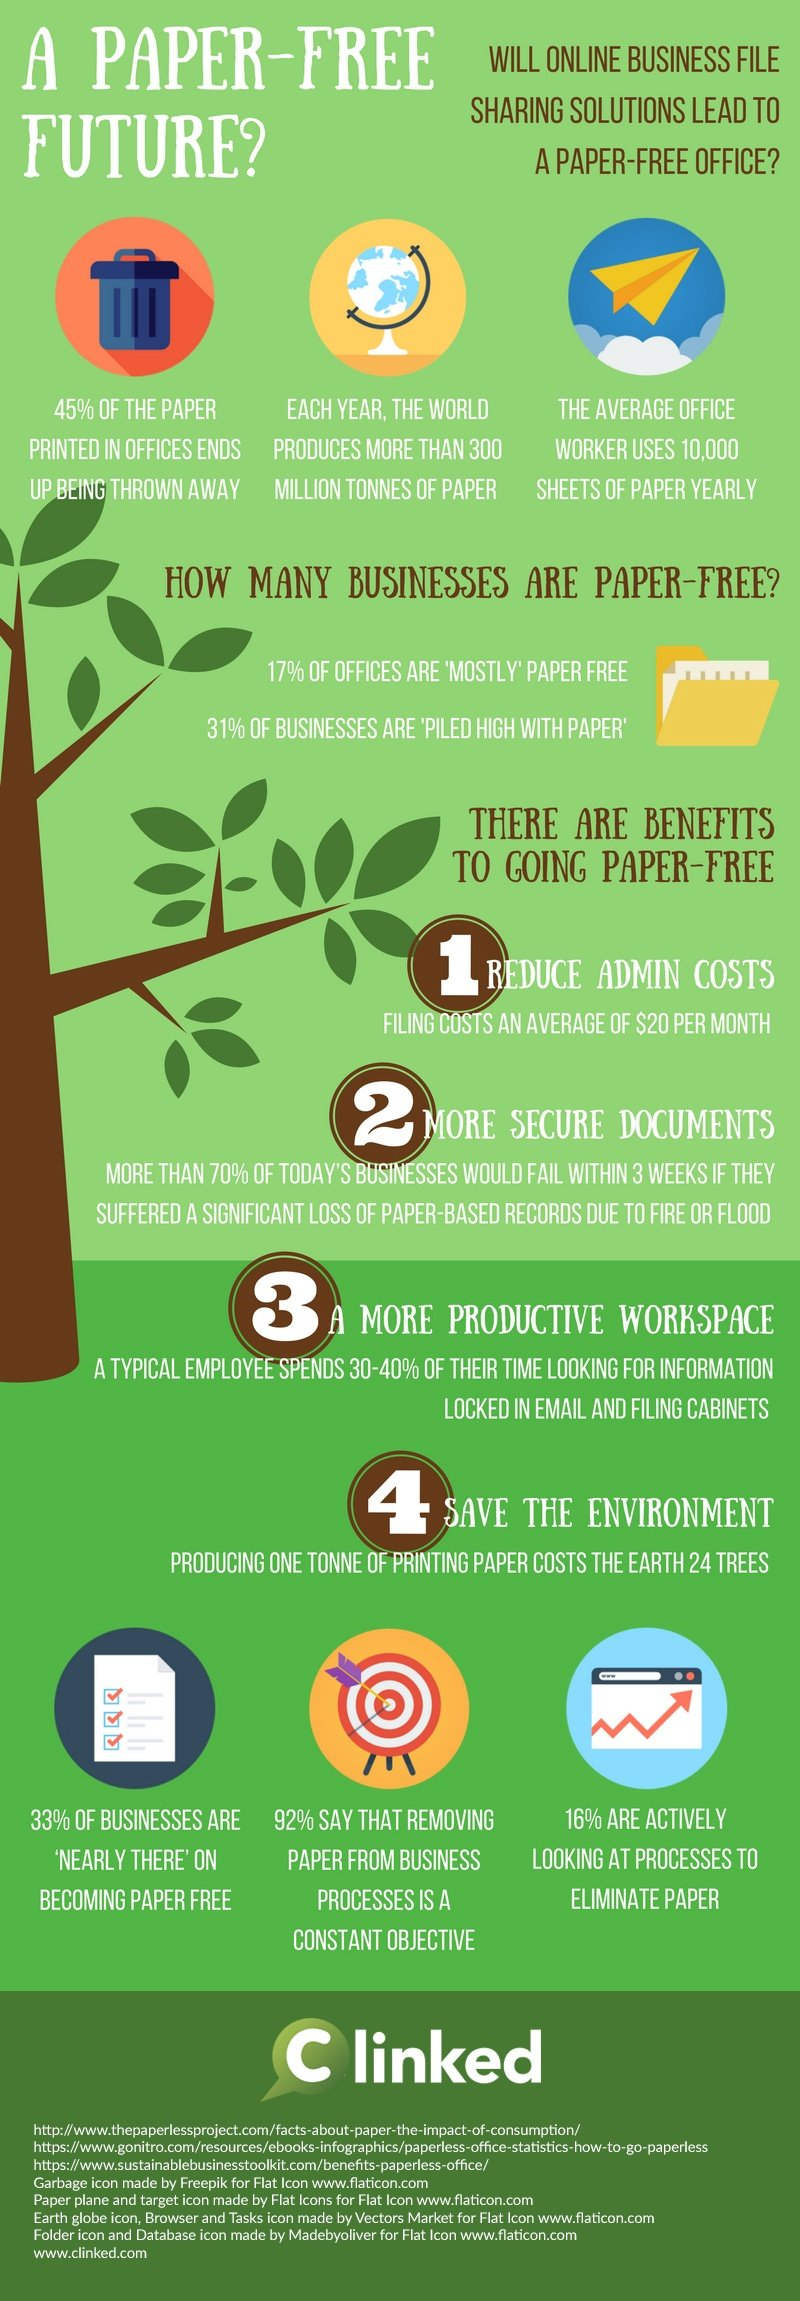 Business File Sharing Paper-Free Future Infographic